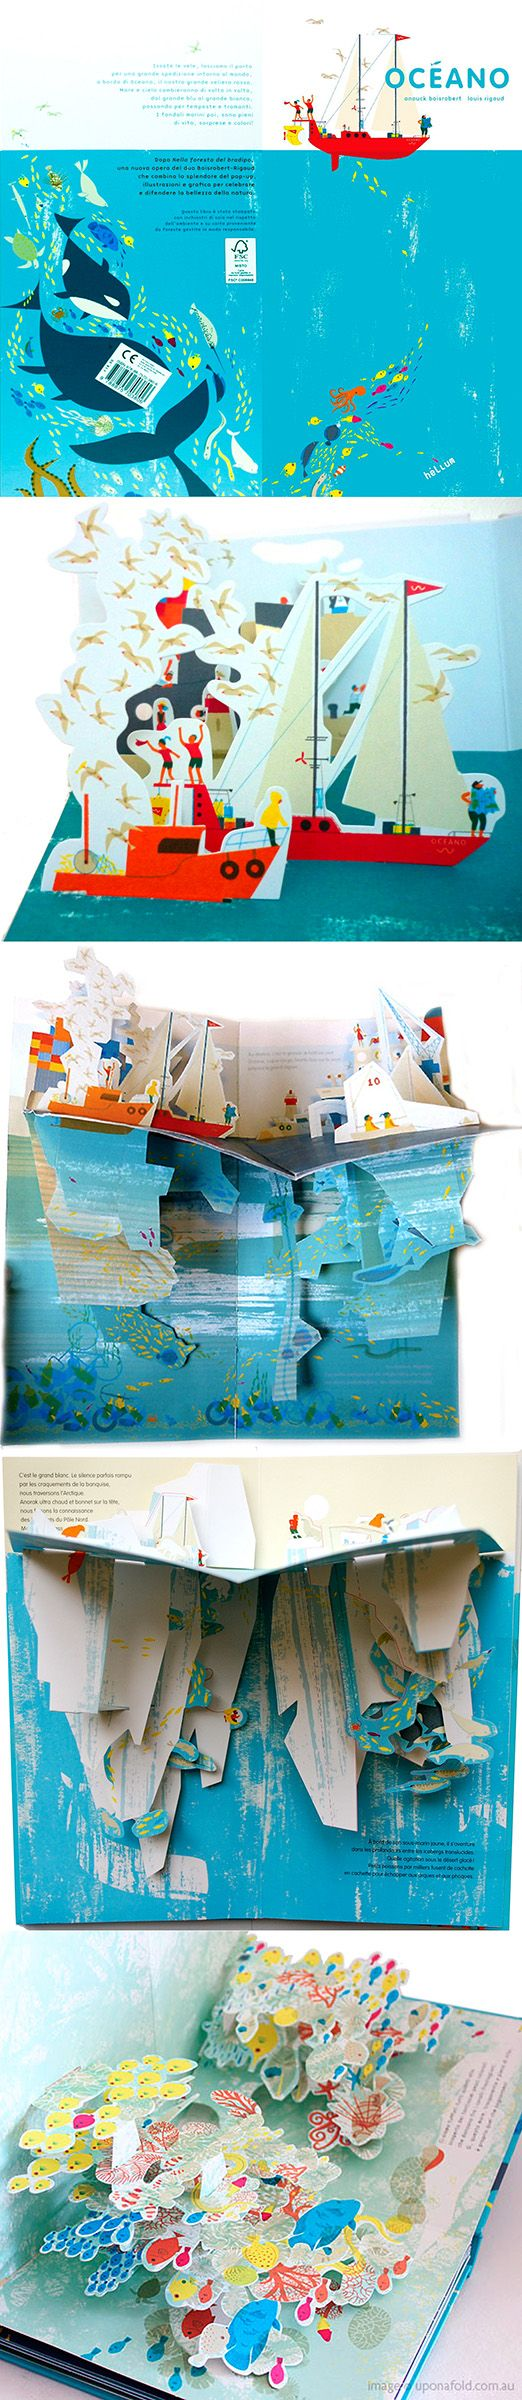 OCEANO POP-UP BOOK  |  by Anouck Boisrobert and Louis Rigaud;  London: Tate…